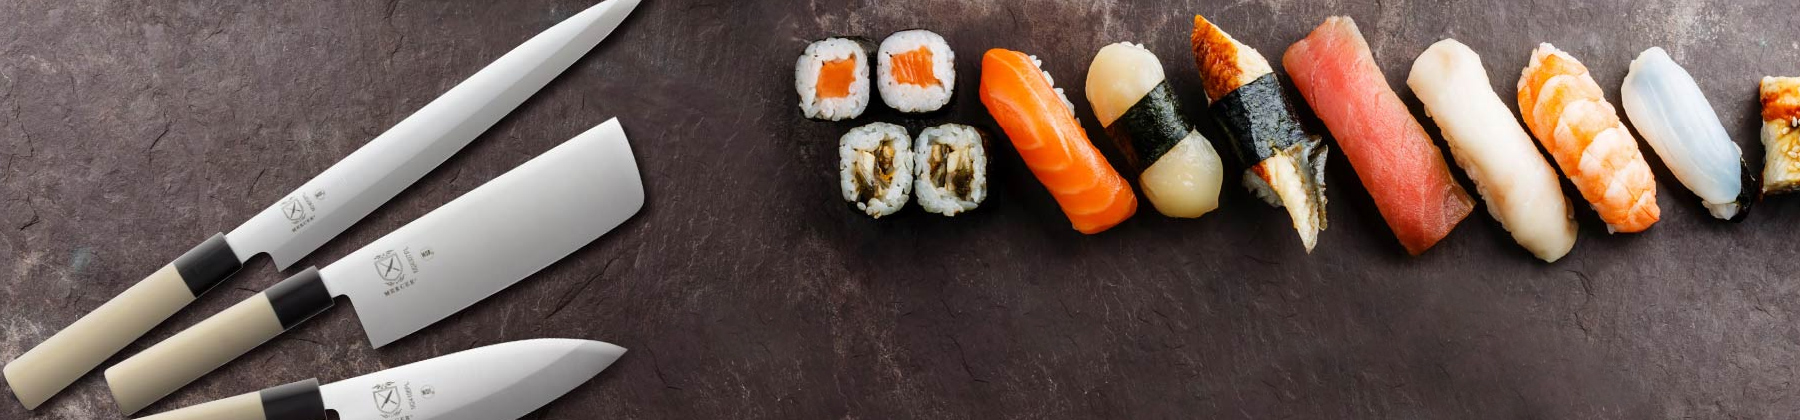 Photo of Asian Cuisine and sushi tools.